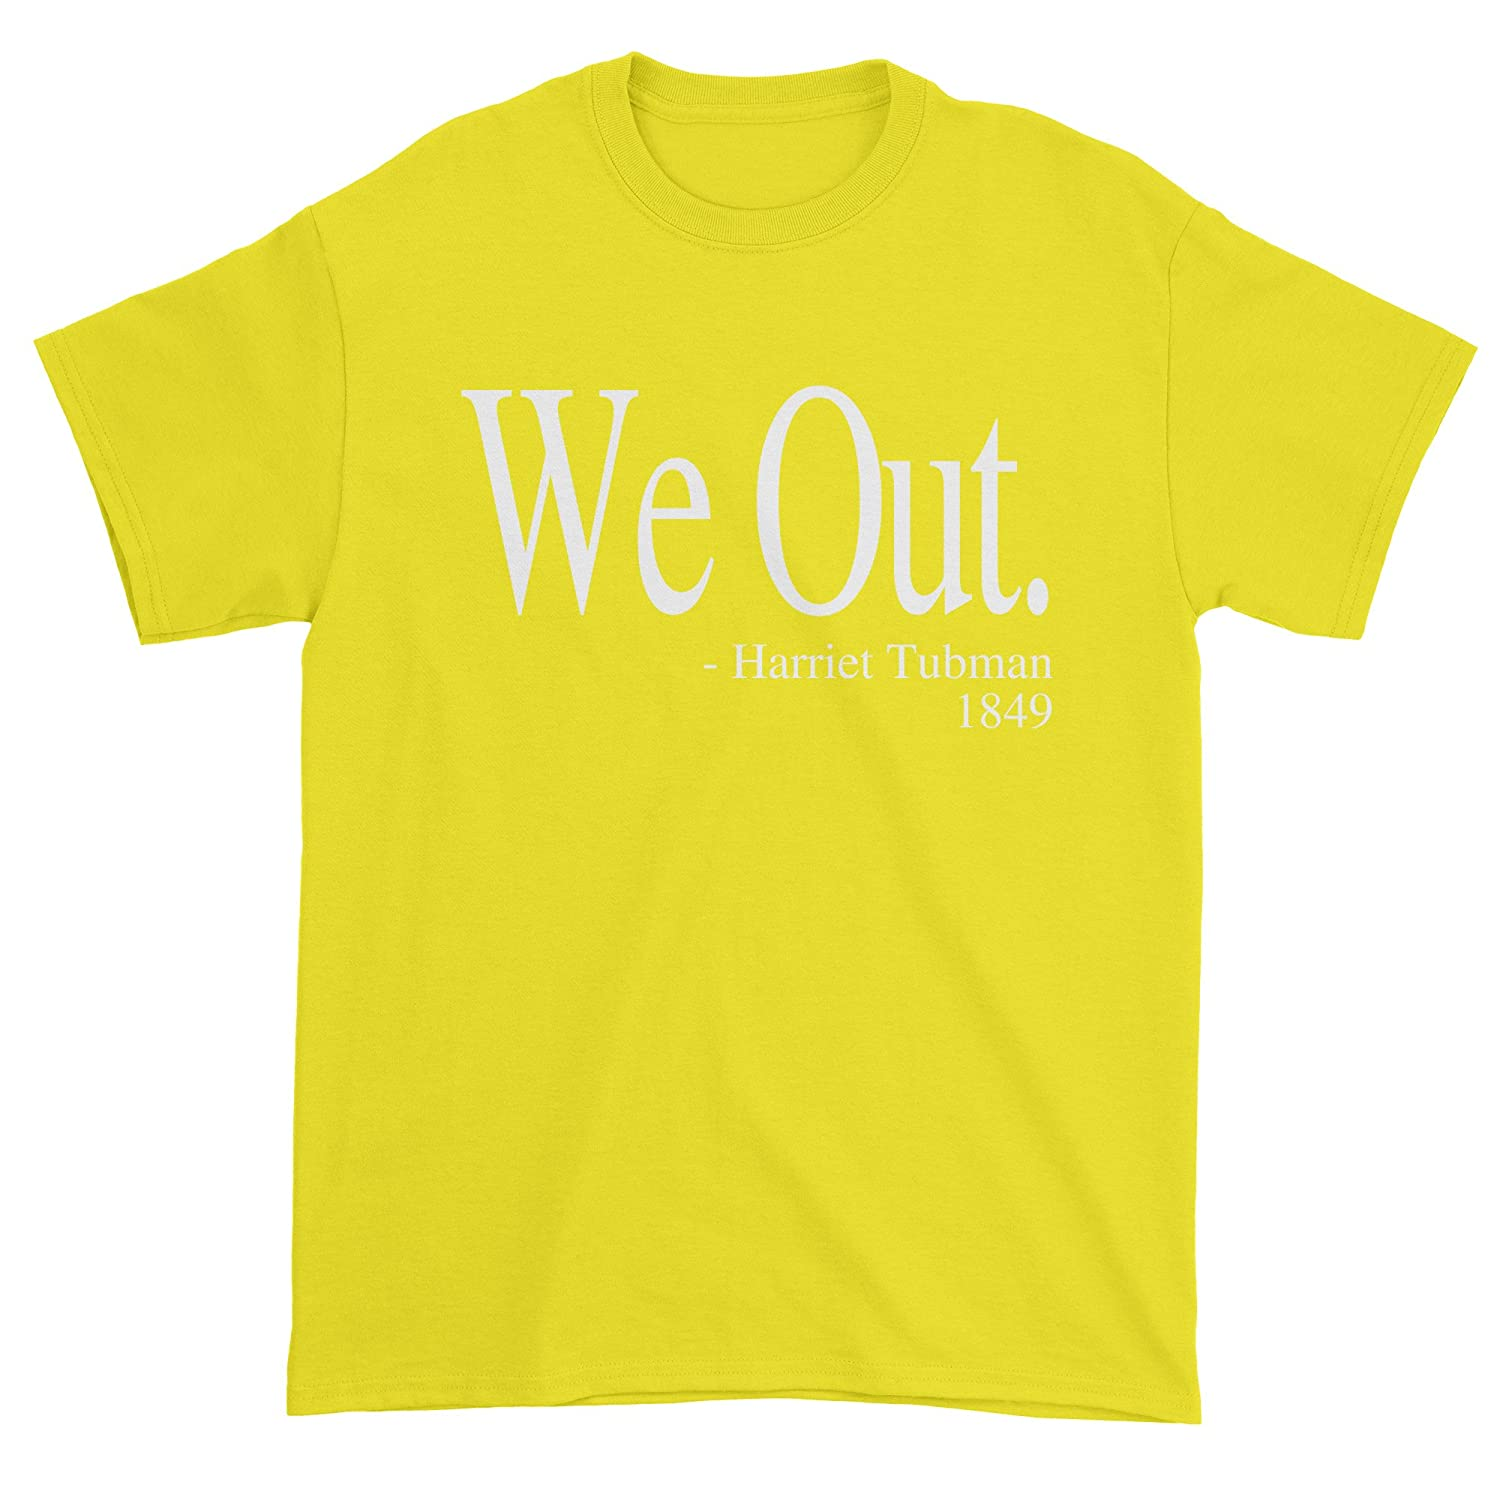 eec4c0cc ... We Out Harriet Tubman Funny QuoteAll of our designs are printed in the  U.S. on high quality garments, providing a super comfortable fit.Expression  Tees ...